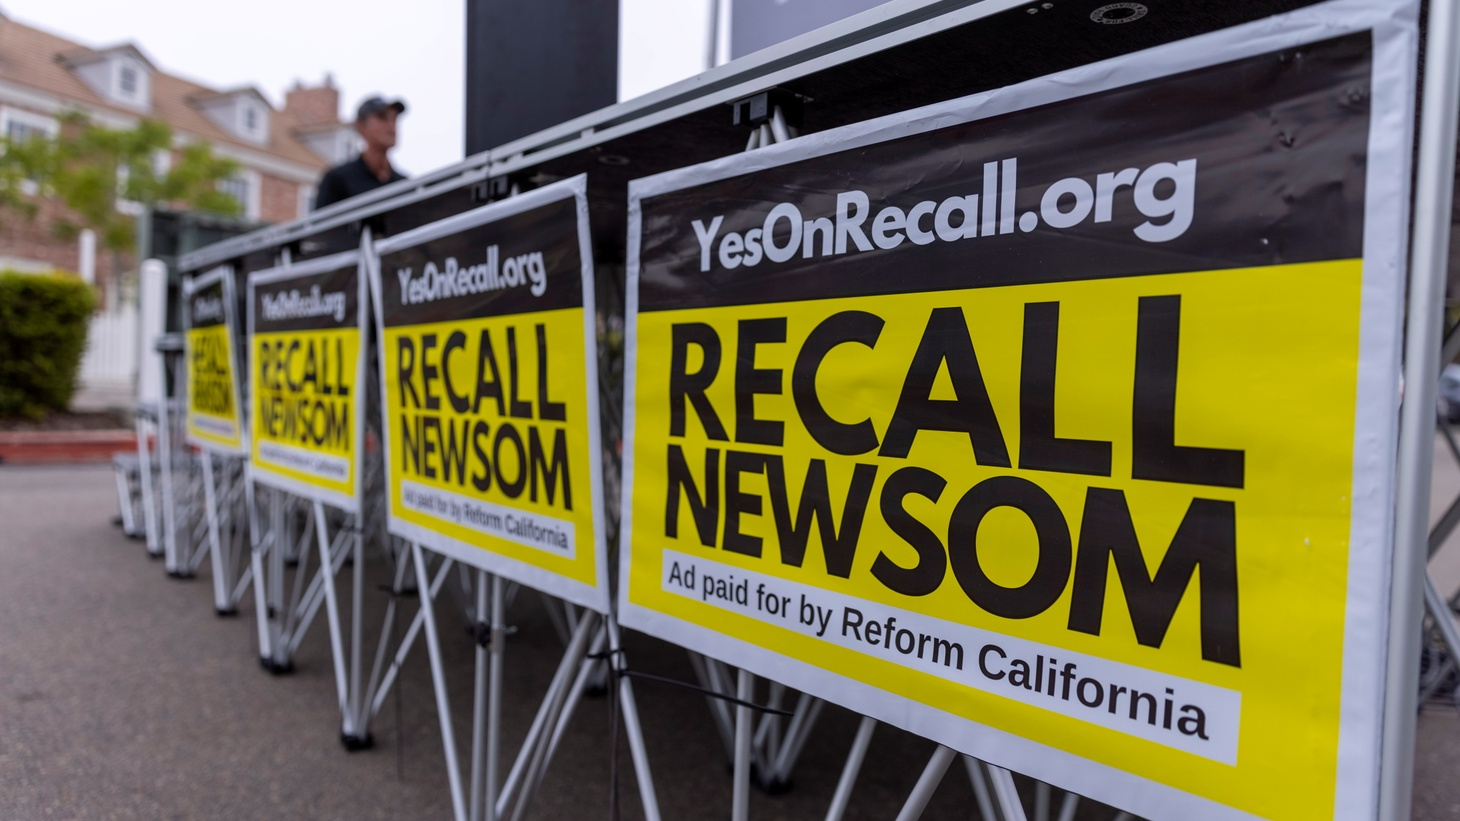 Signs are shown at a rally for the recall campaign of California governor Gavin Newsom in Carlsbad, California, U.S., June 30, 2021.